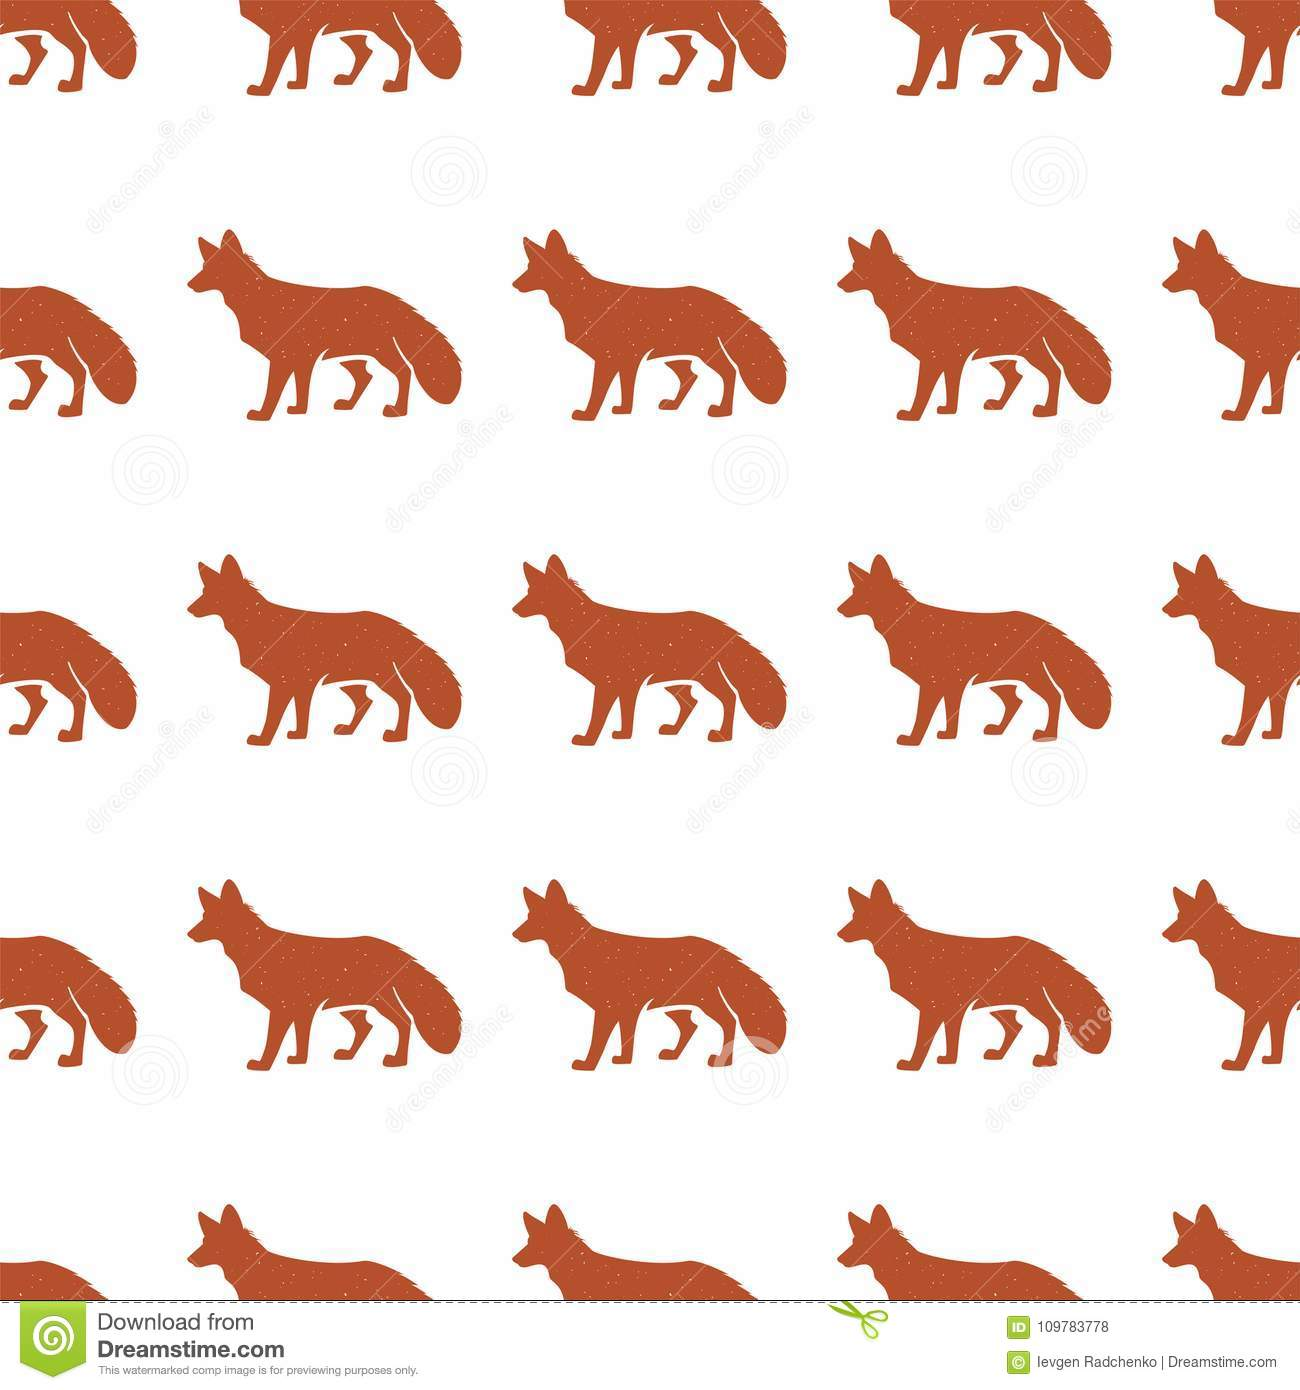 Red Fox Pattern Seamless Background Illustration With Wild Animal